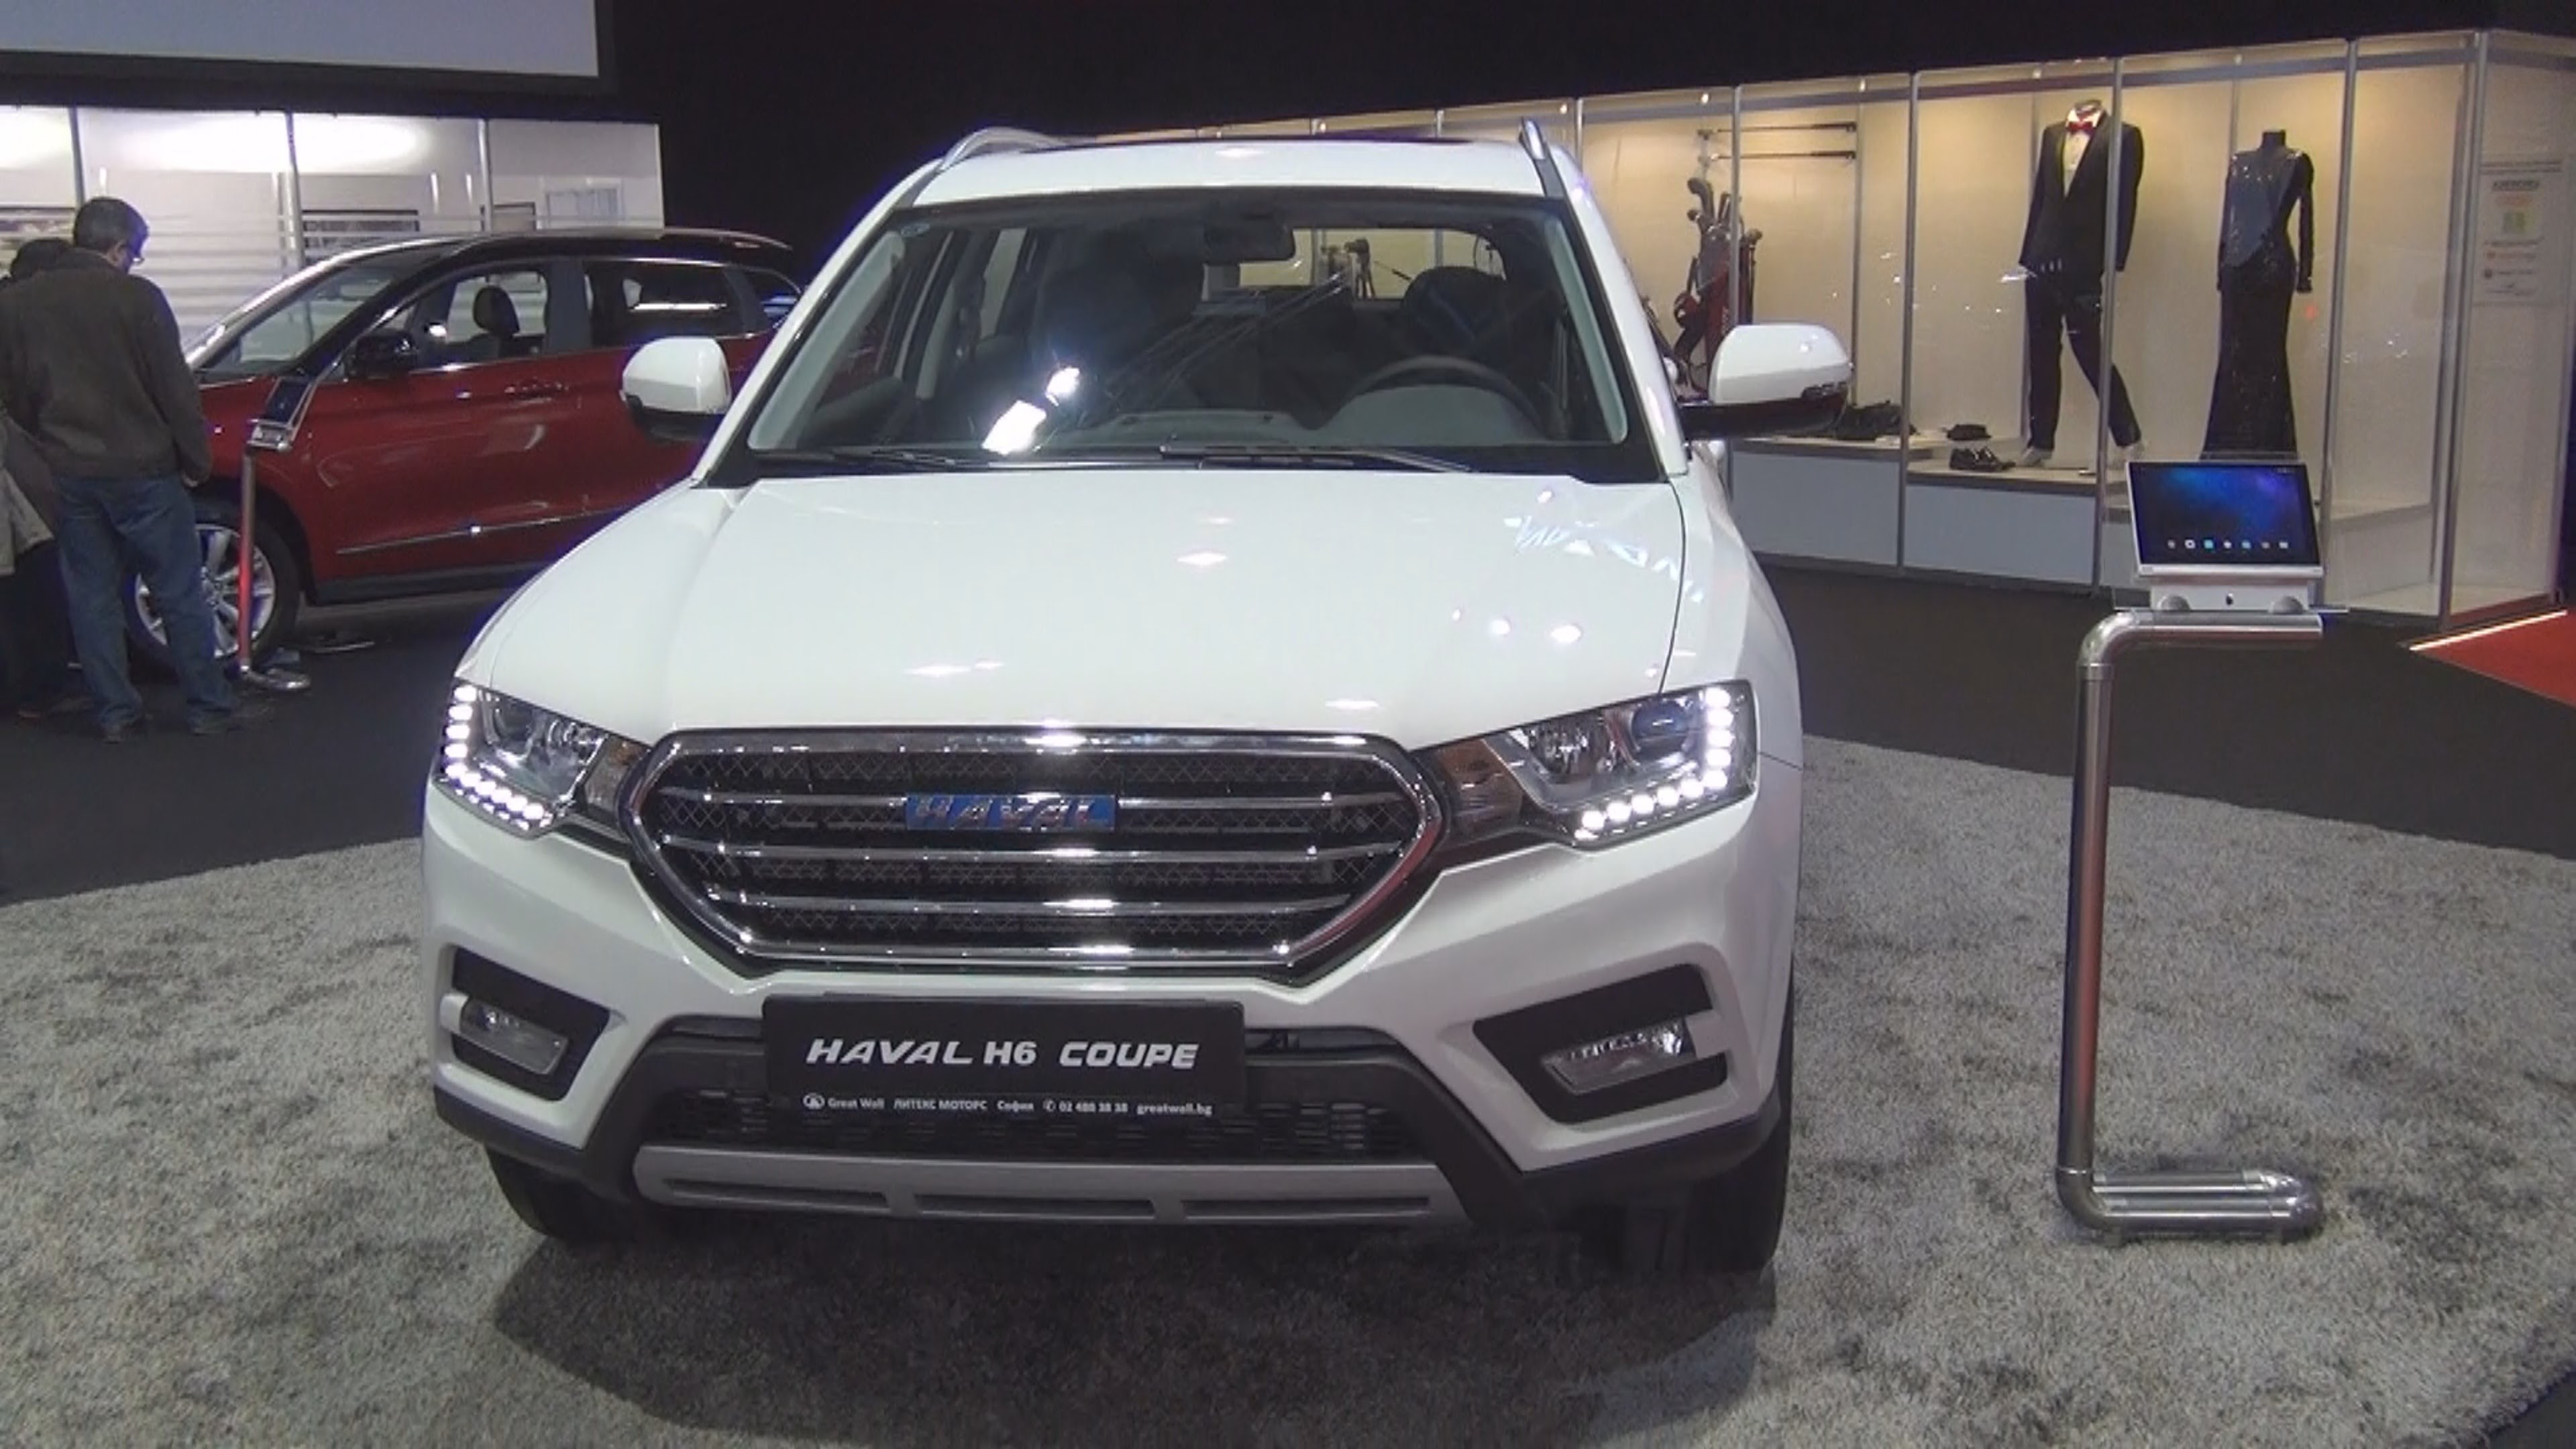 Haval H5 suv restyling